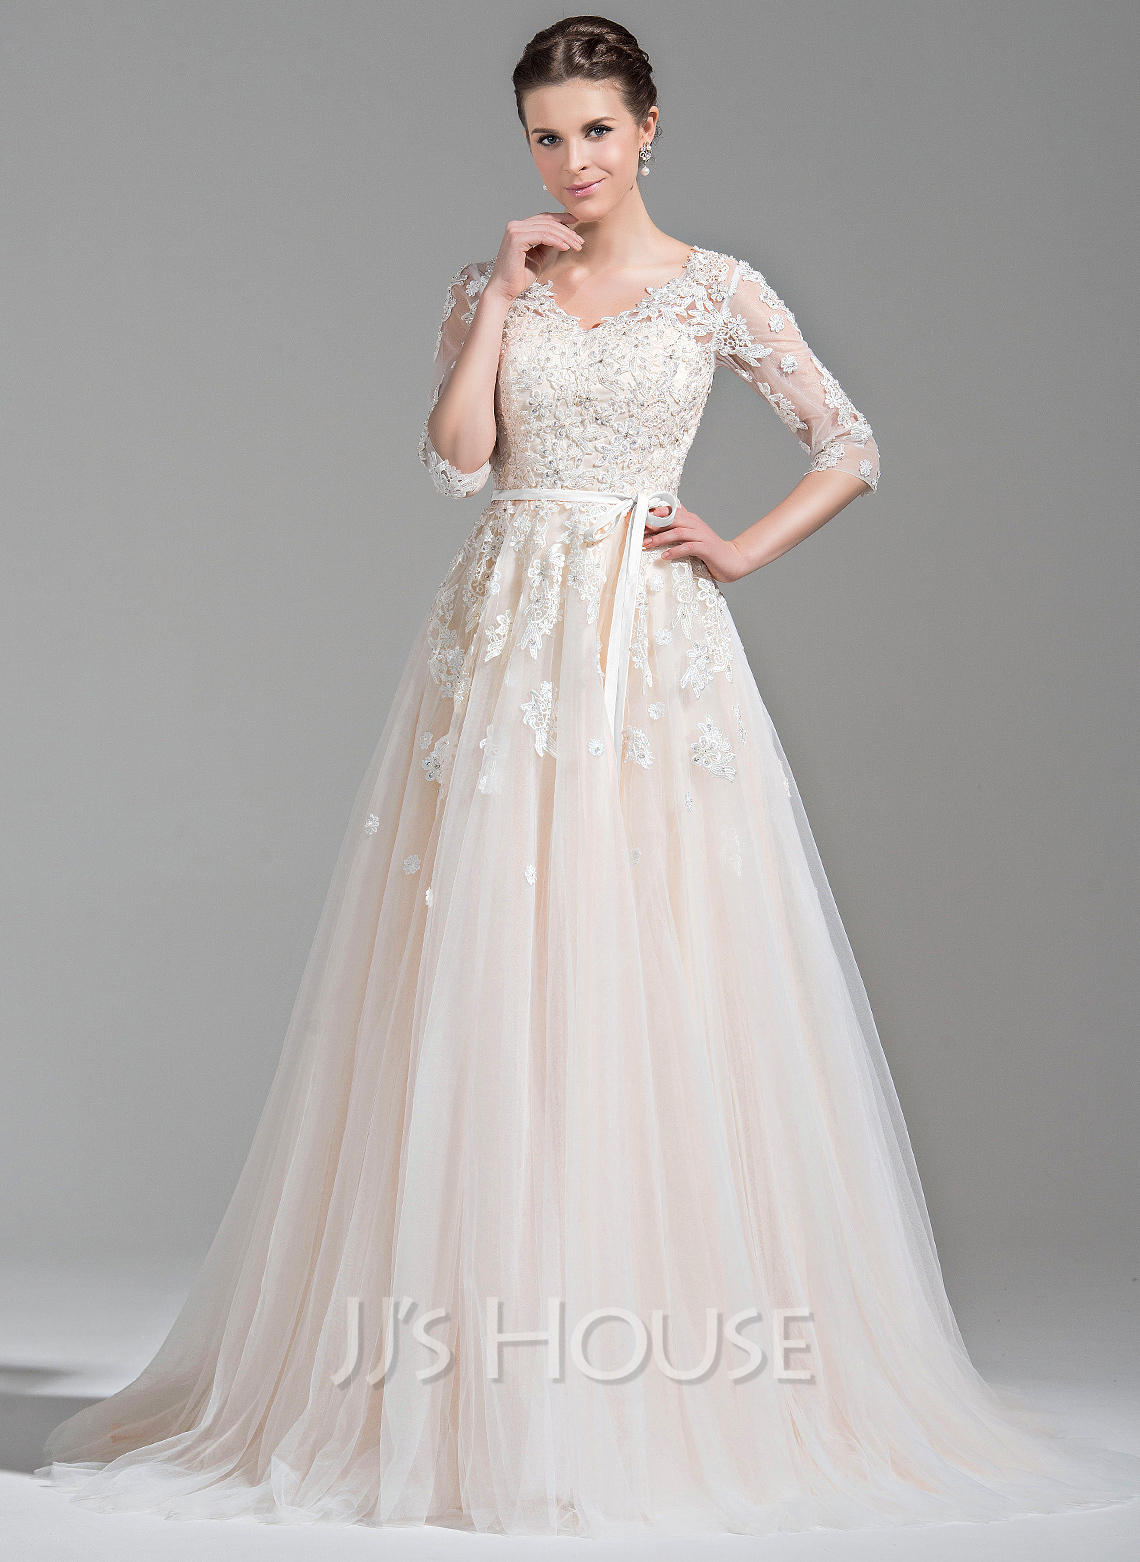 Cheap Wedding Dresses c2 jjs house wedding dresses Ball Gown V neck Court Train Tulle Wedding Dress With Beading Appliques Lace Sequins